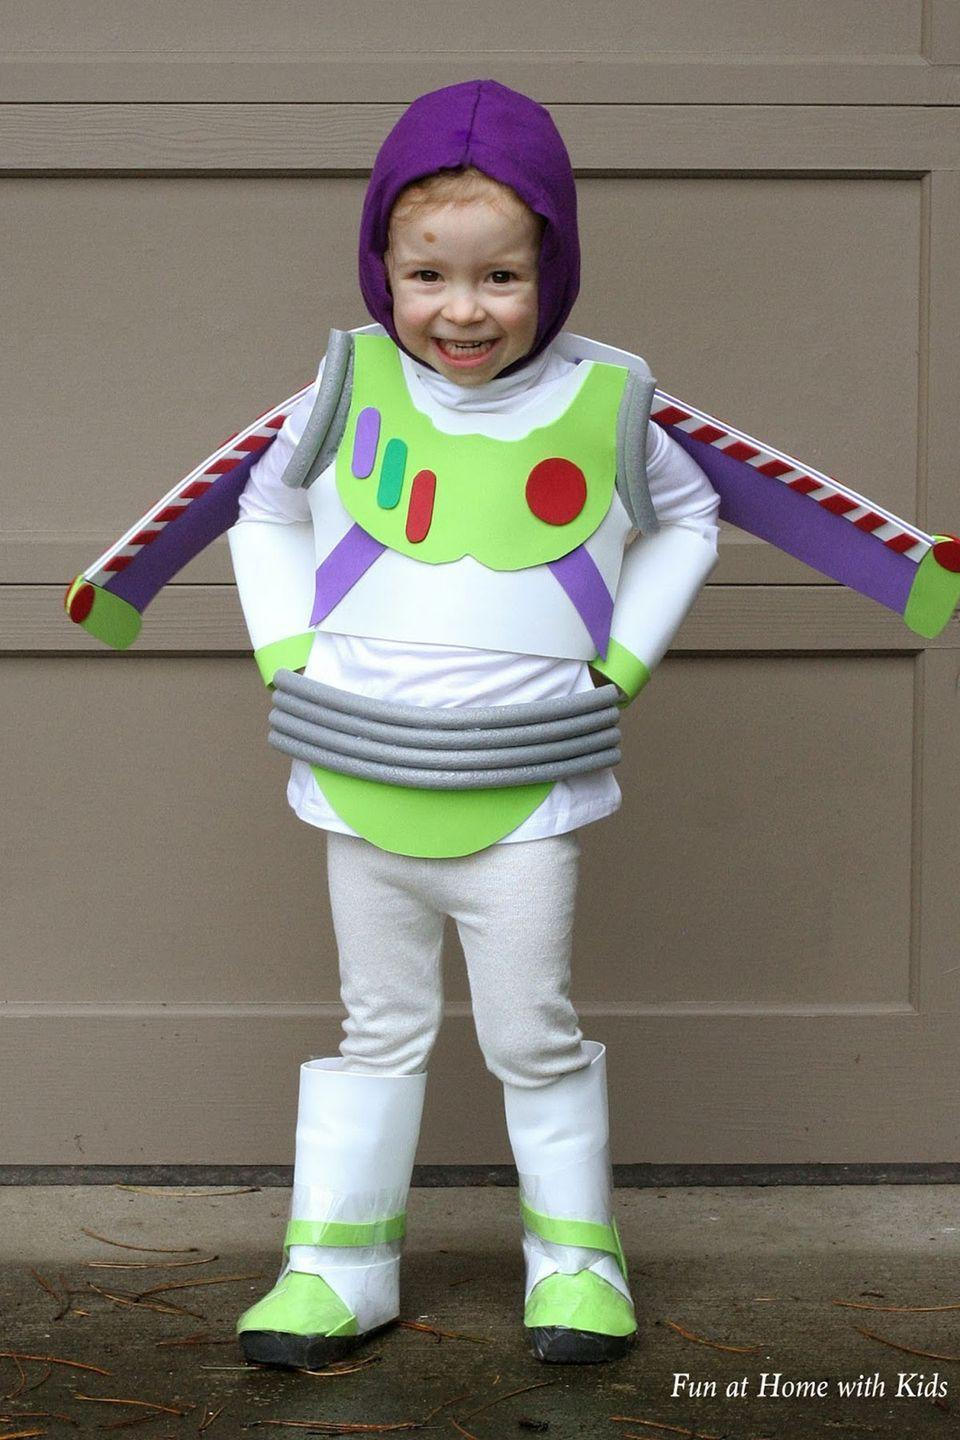 """<p>Kids will want to wear this spaceman costume from Disney's <em>Toy Story</em> for infinity...and beyond!</p><p><strong>Get the tutorial at <a href=""""http://www.funathomewithkids.com/2013/09/diy-kids-buzz-lightyear-no-sew.html"""" rel=""""nofollow noopener"""" target=""""_blank"""" data-ylk=""""slk:Fun at Home with Kids"""" class=""""link rapid-noclick-resp"""">Fun at Home with Kids</a>.</strong><br> </p>"""